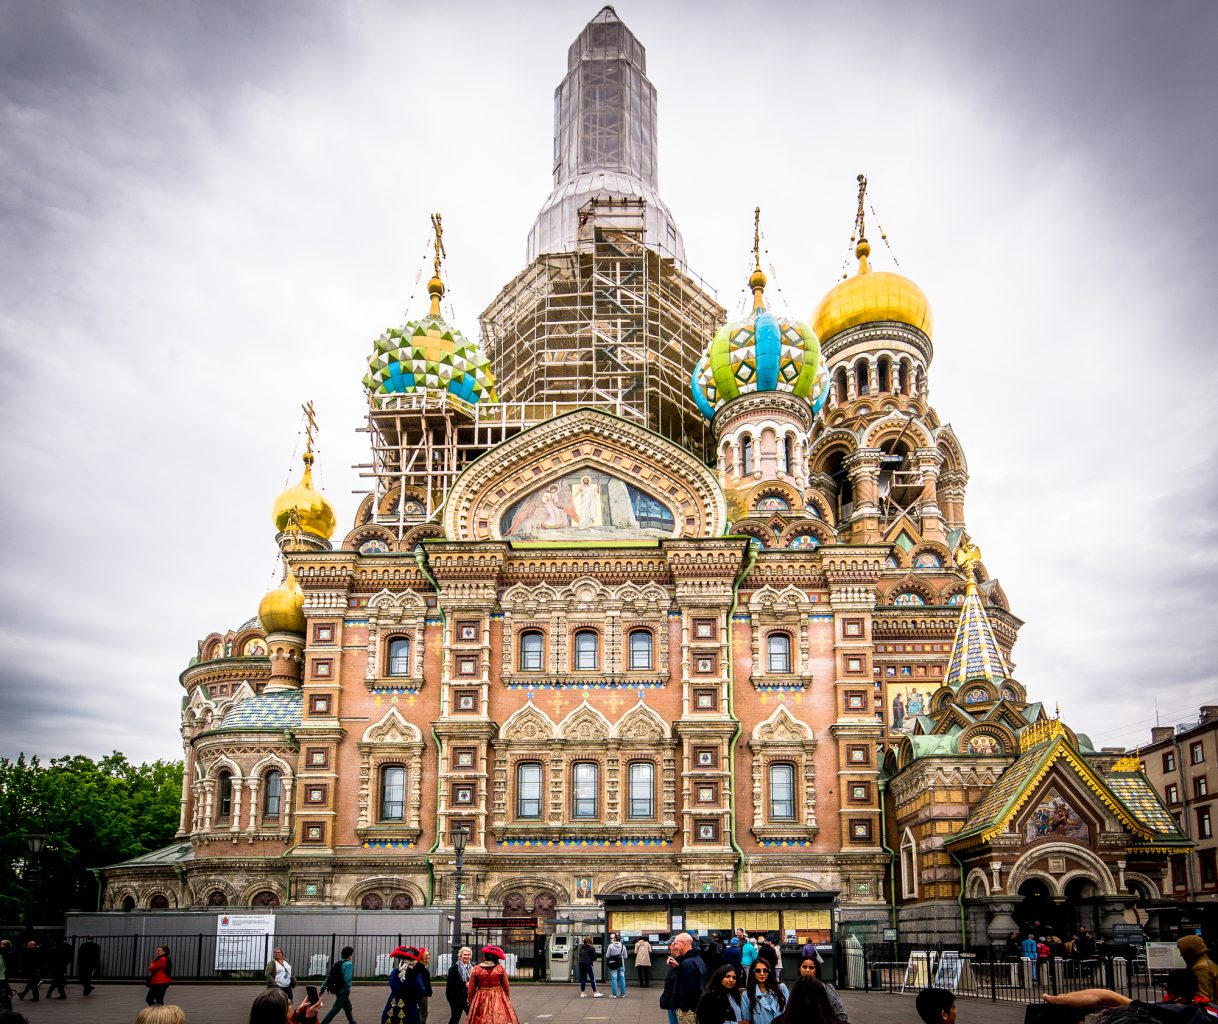 Church of the Savior on Spilled Blood exterior